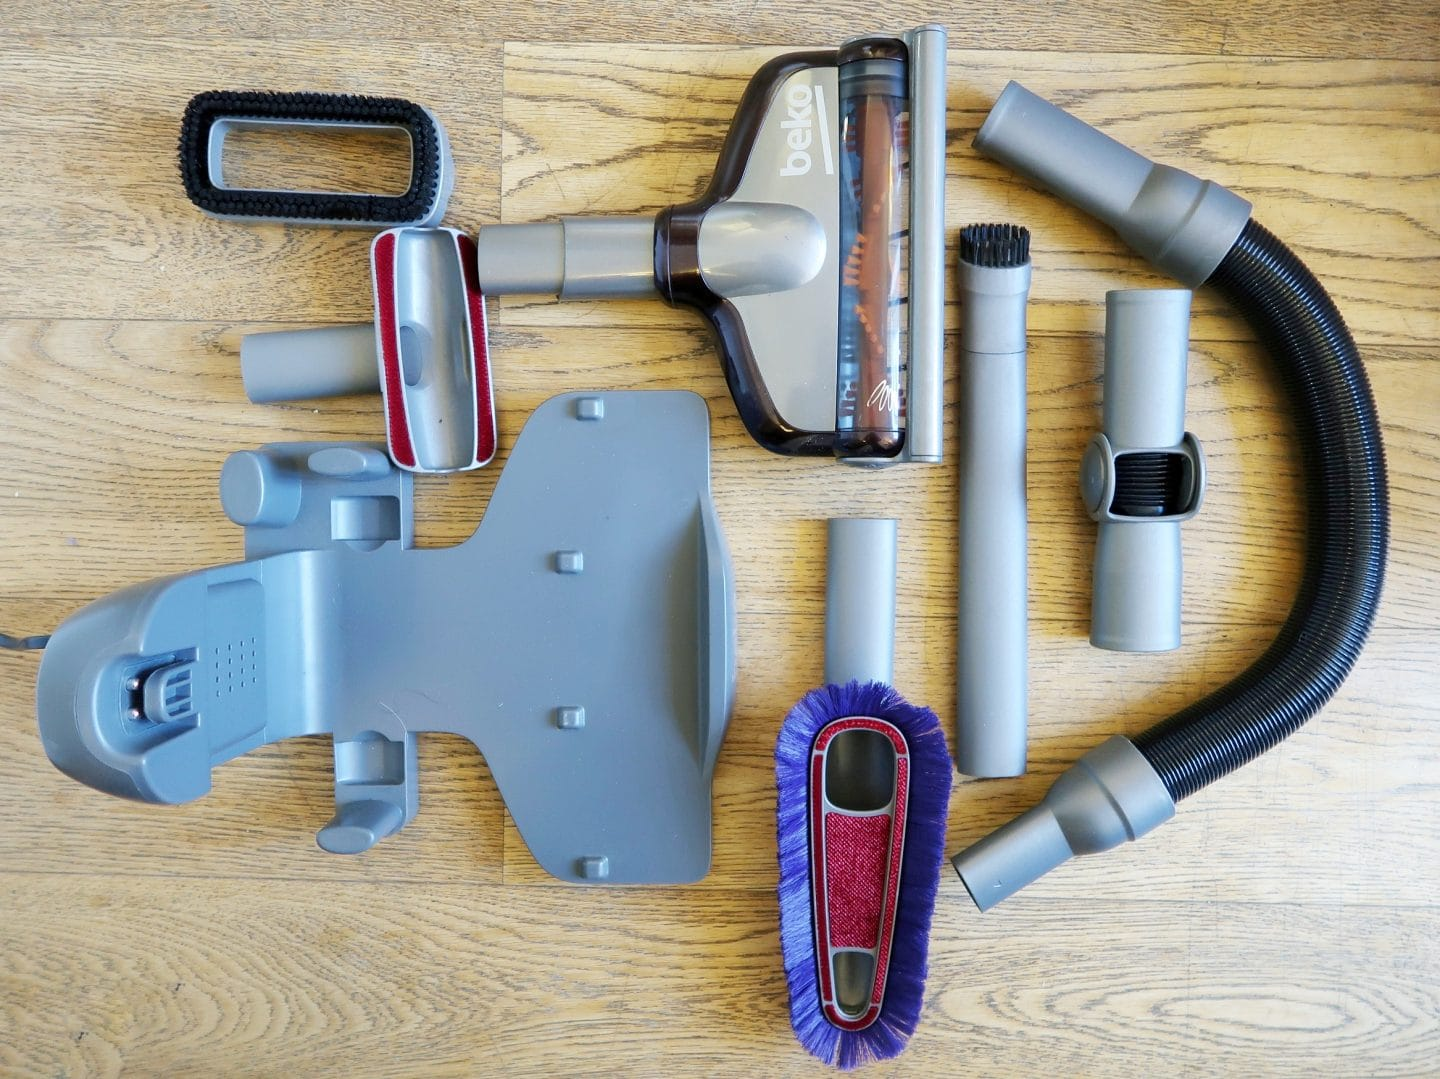 All the different attachment parts of the Beko Cordless vacuum arranged on the floor.